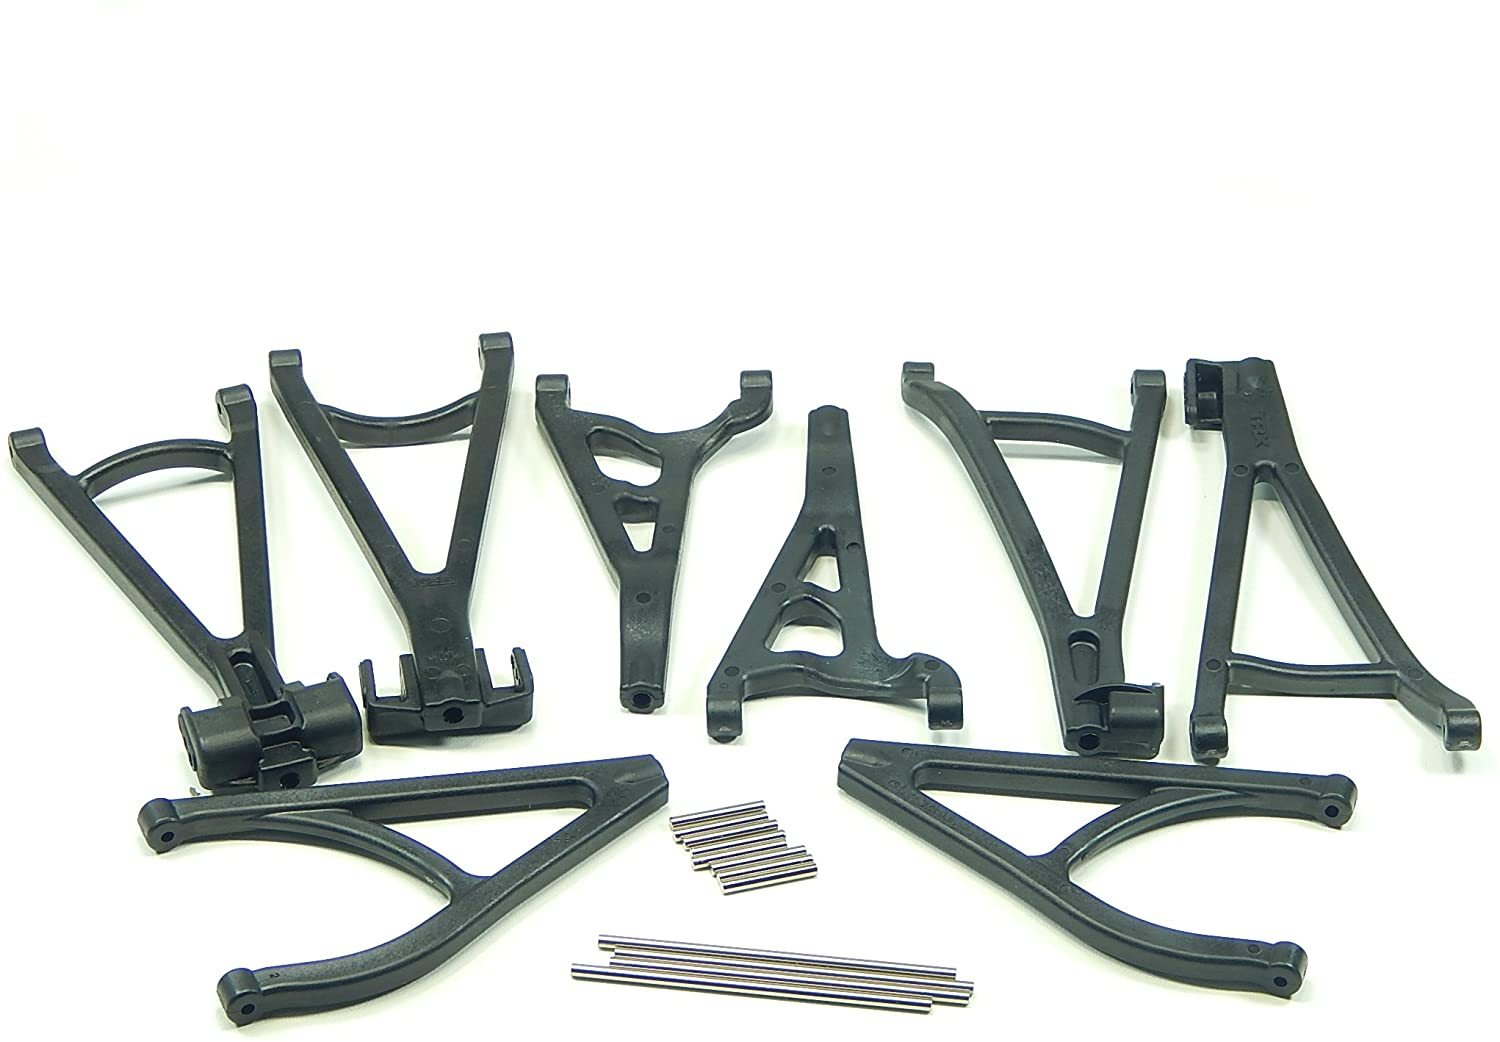 Traxxas Revo 3.3 Front & Rear Suspension Control A Arms & Pins 5331 5332 5333 71IoDbI2DUL